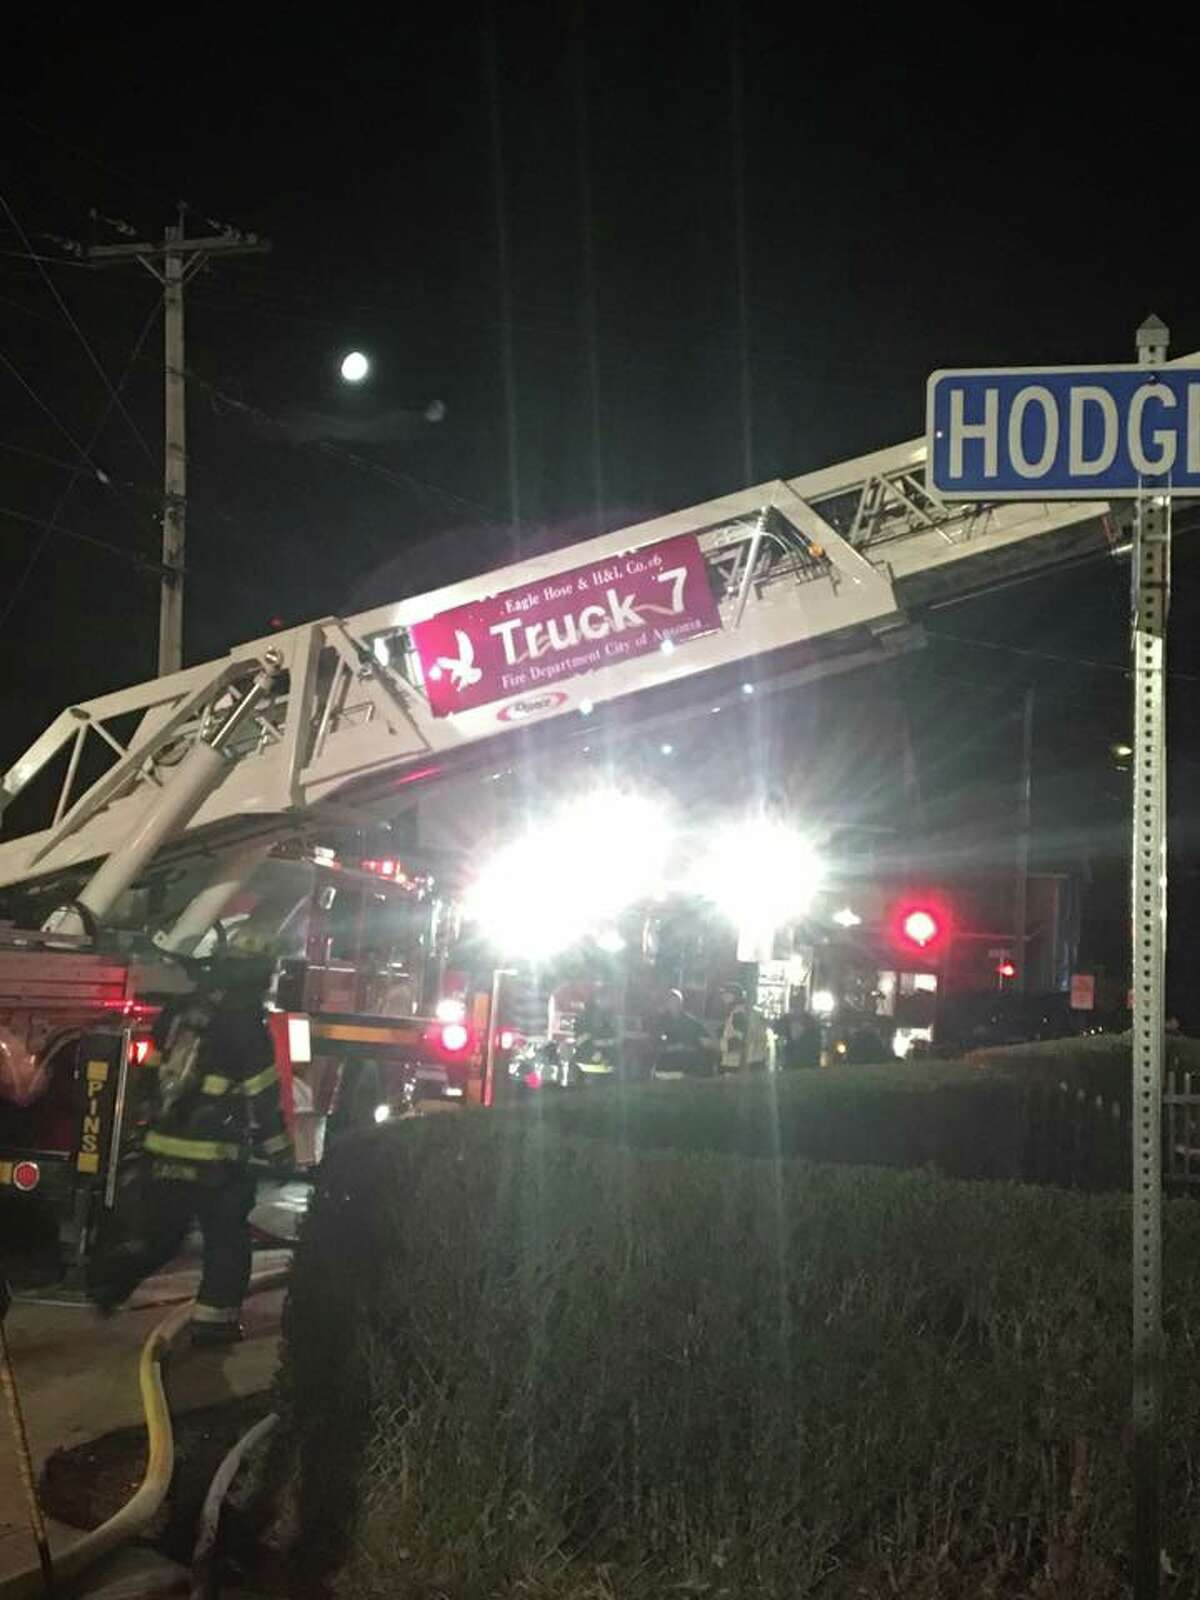 Two firefighters were injured fighting an overnight blaze at a home on Hodge Avenue in Ansonia, but no residents were harmed.